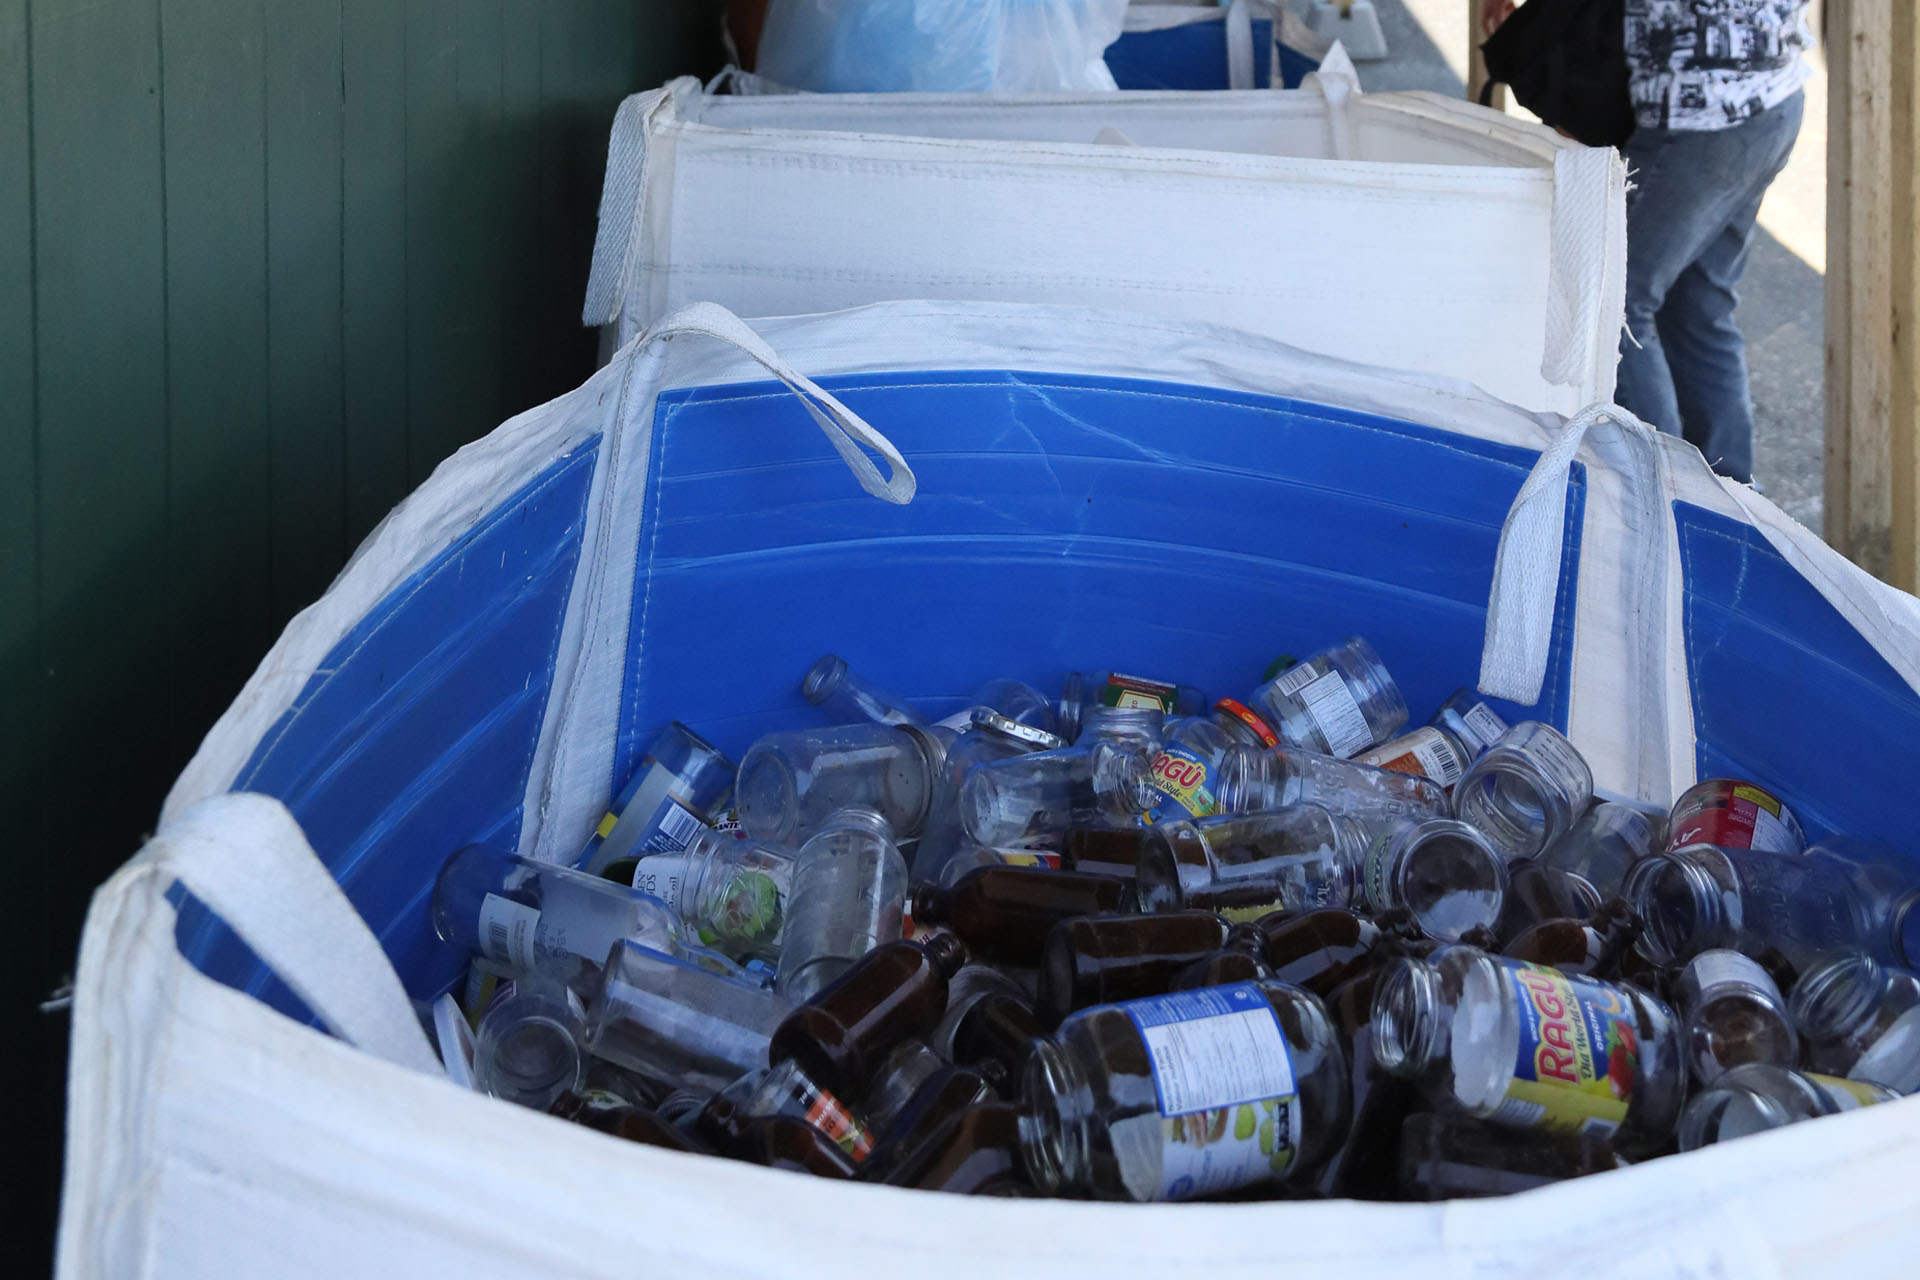 Collect refundable deposits on beverage containers at Island Foods